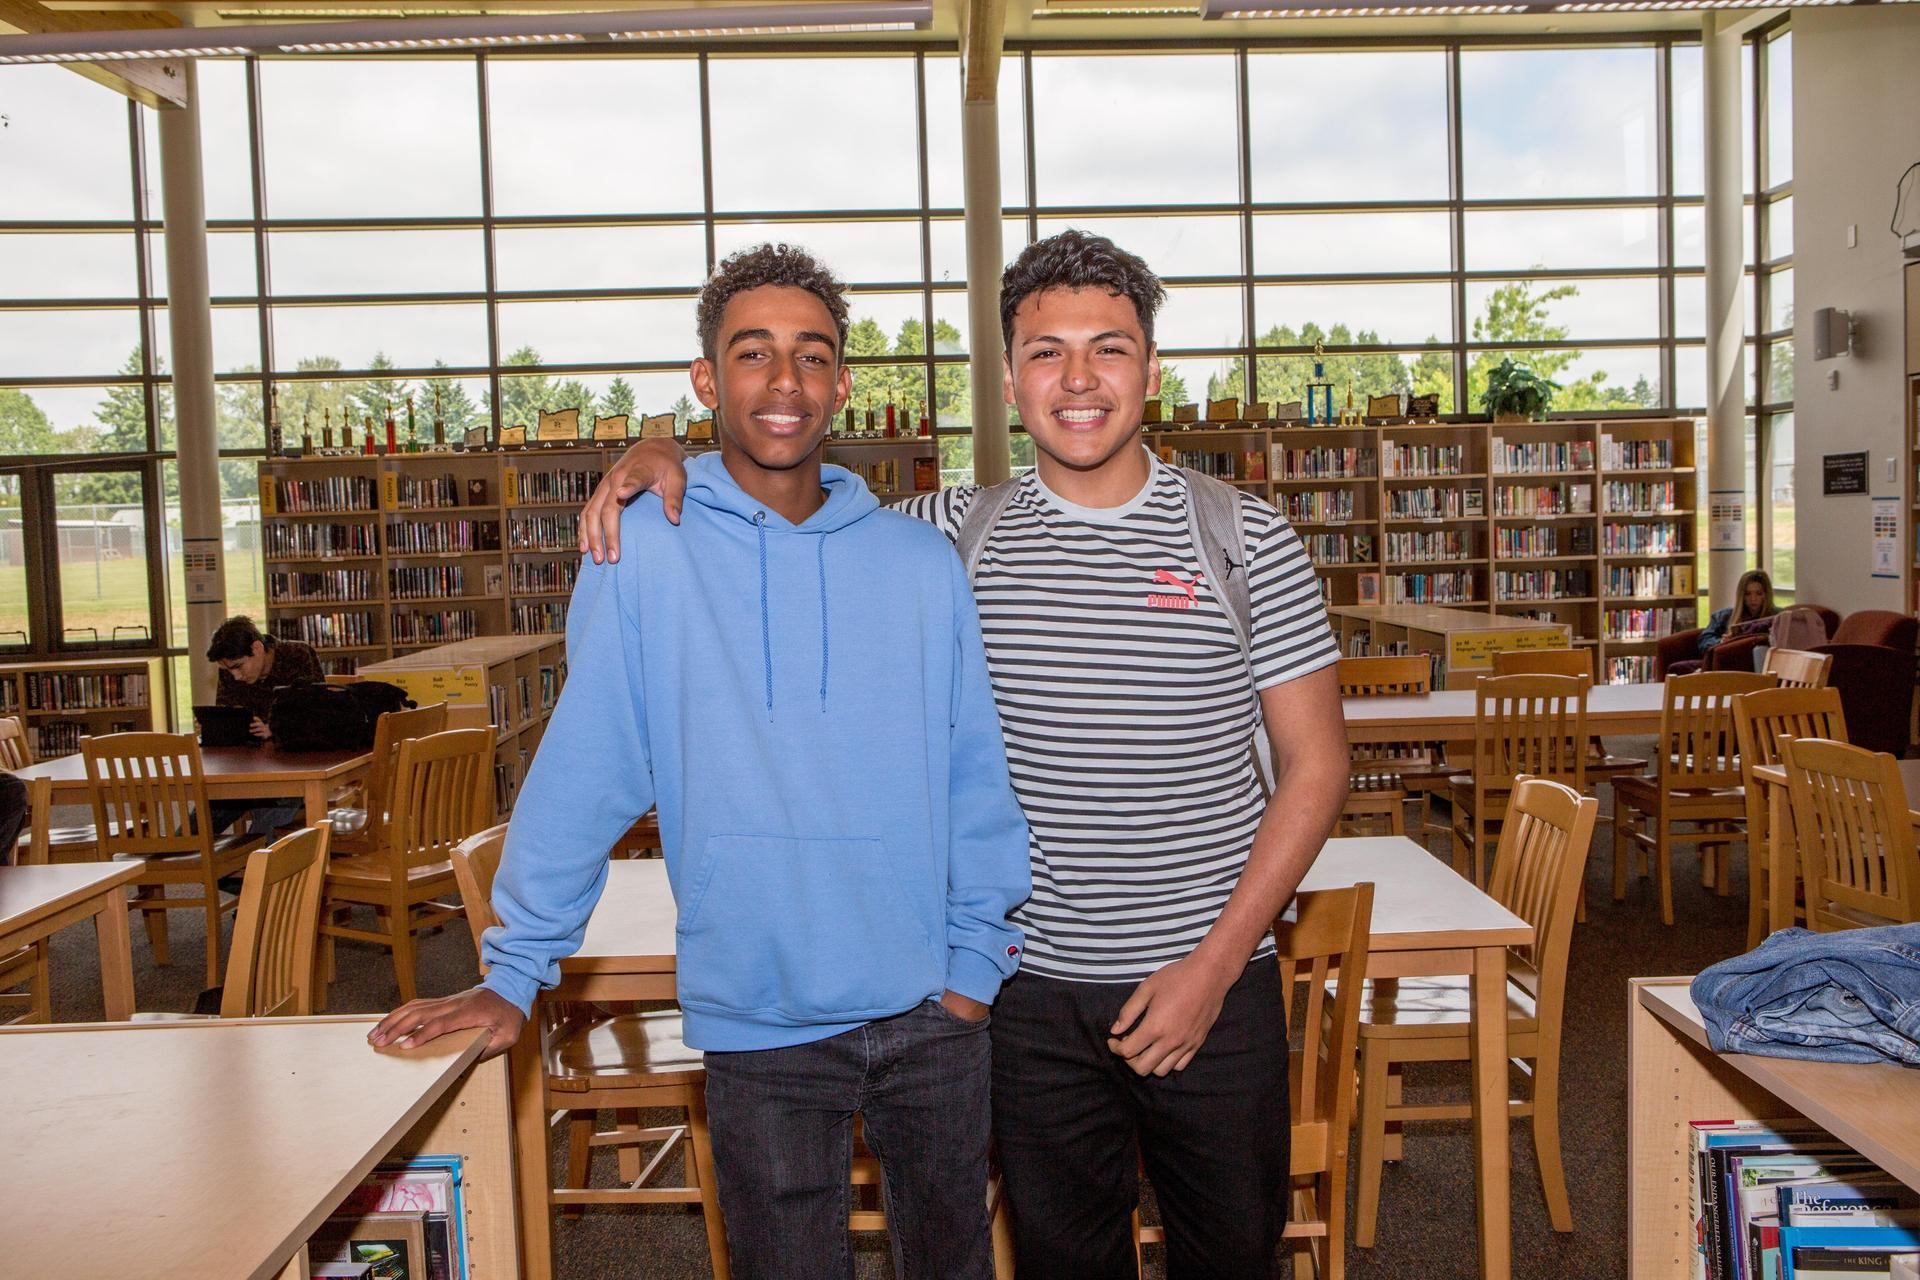 two students smiling in library